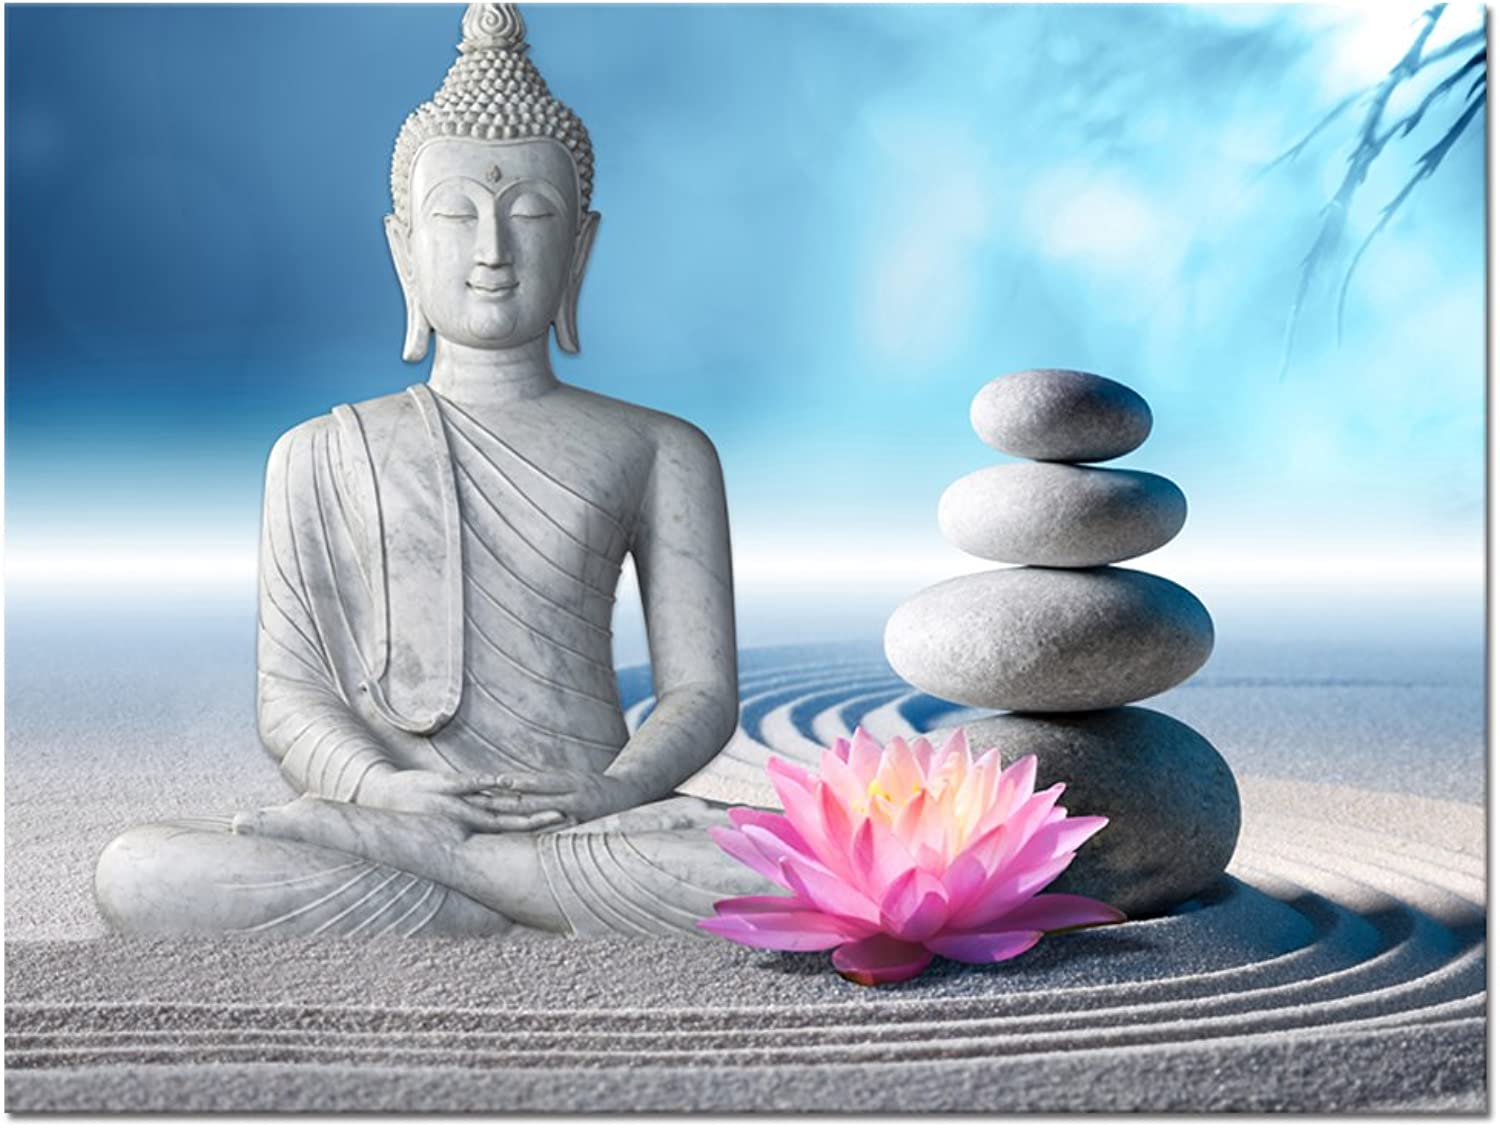 Buddha Canvas Wall Art,Framed and Stretched,Large Size Peaceful Buddha Act with Compassion ,White Sand Zen Stone Canvas Prints,Water-proof,Religious Style Canvas Art (24 x32 )